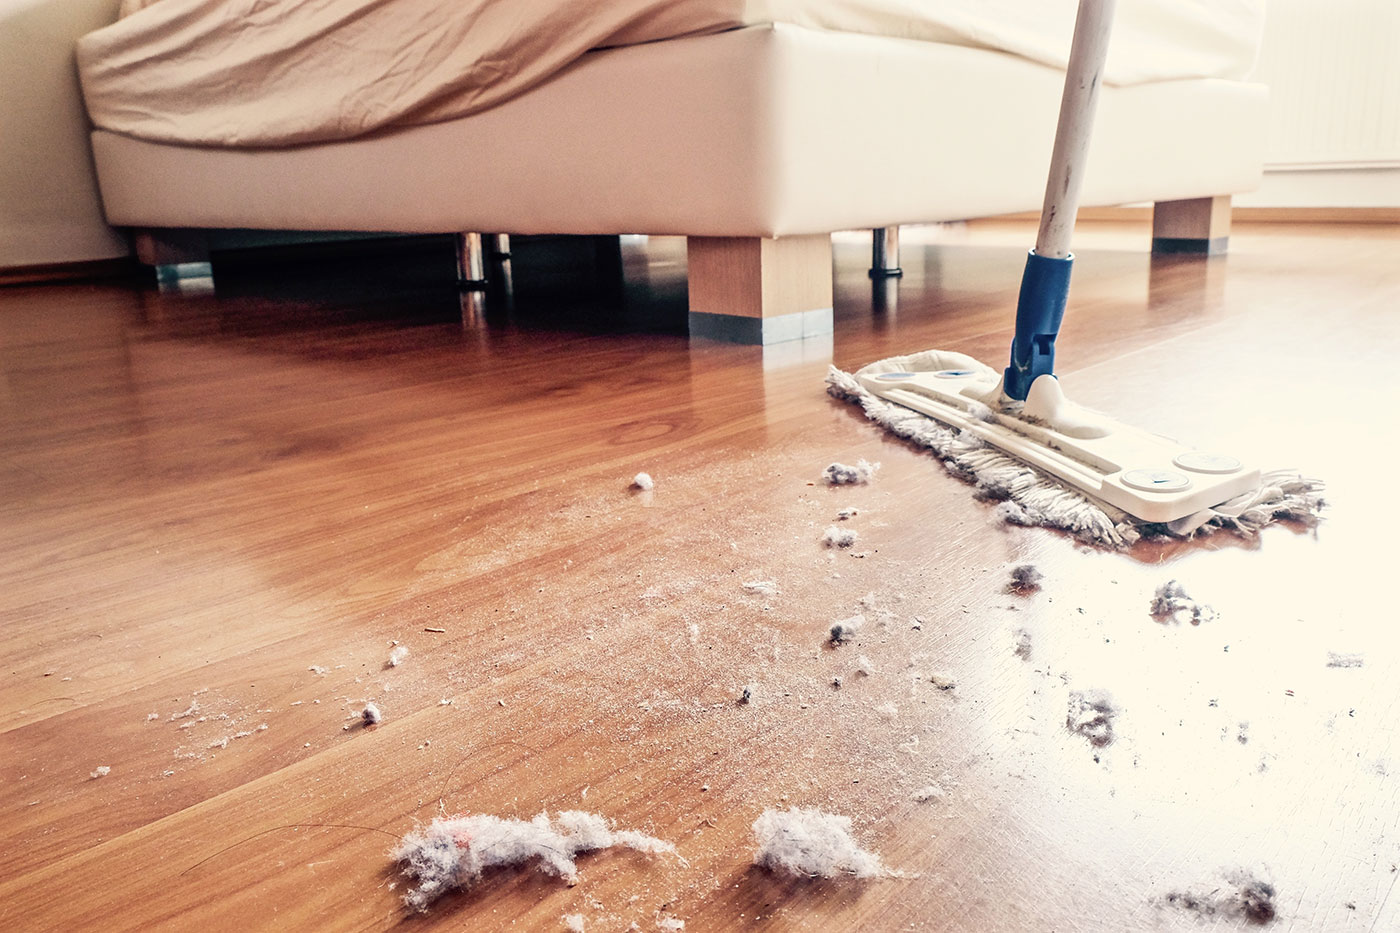 What is the best way to get rid of dust from your home?